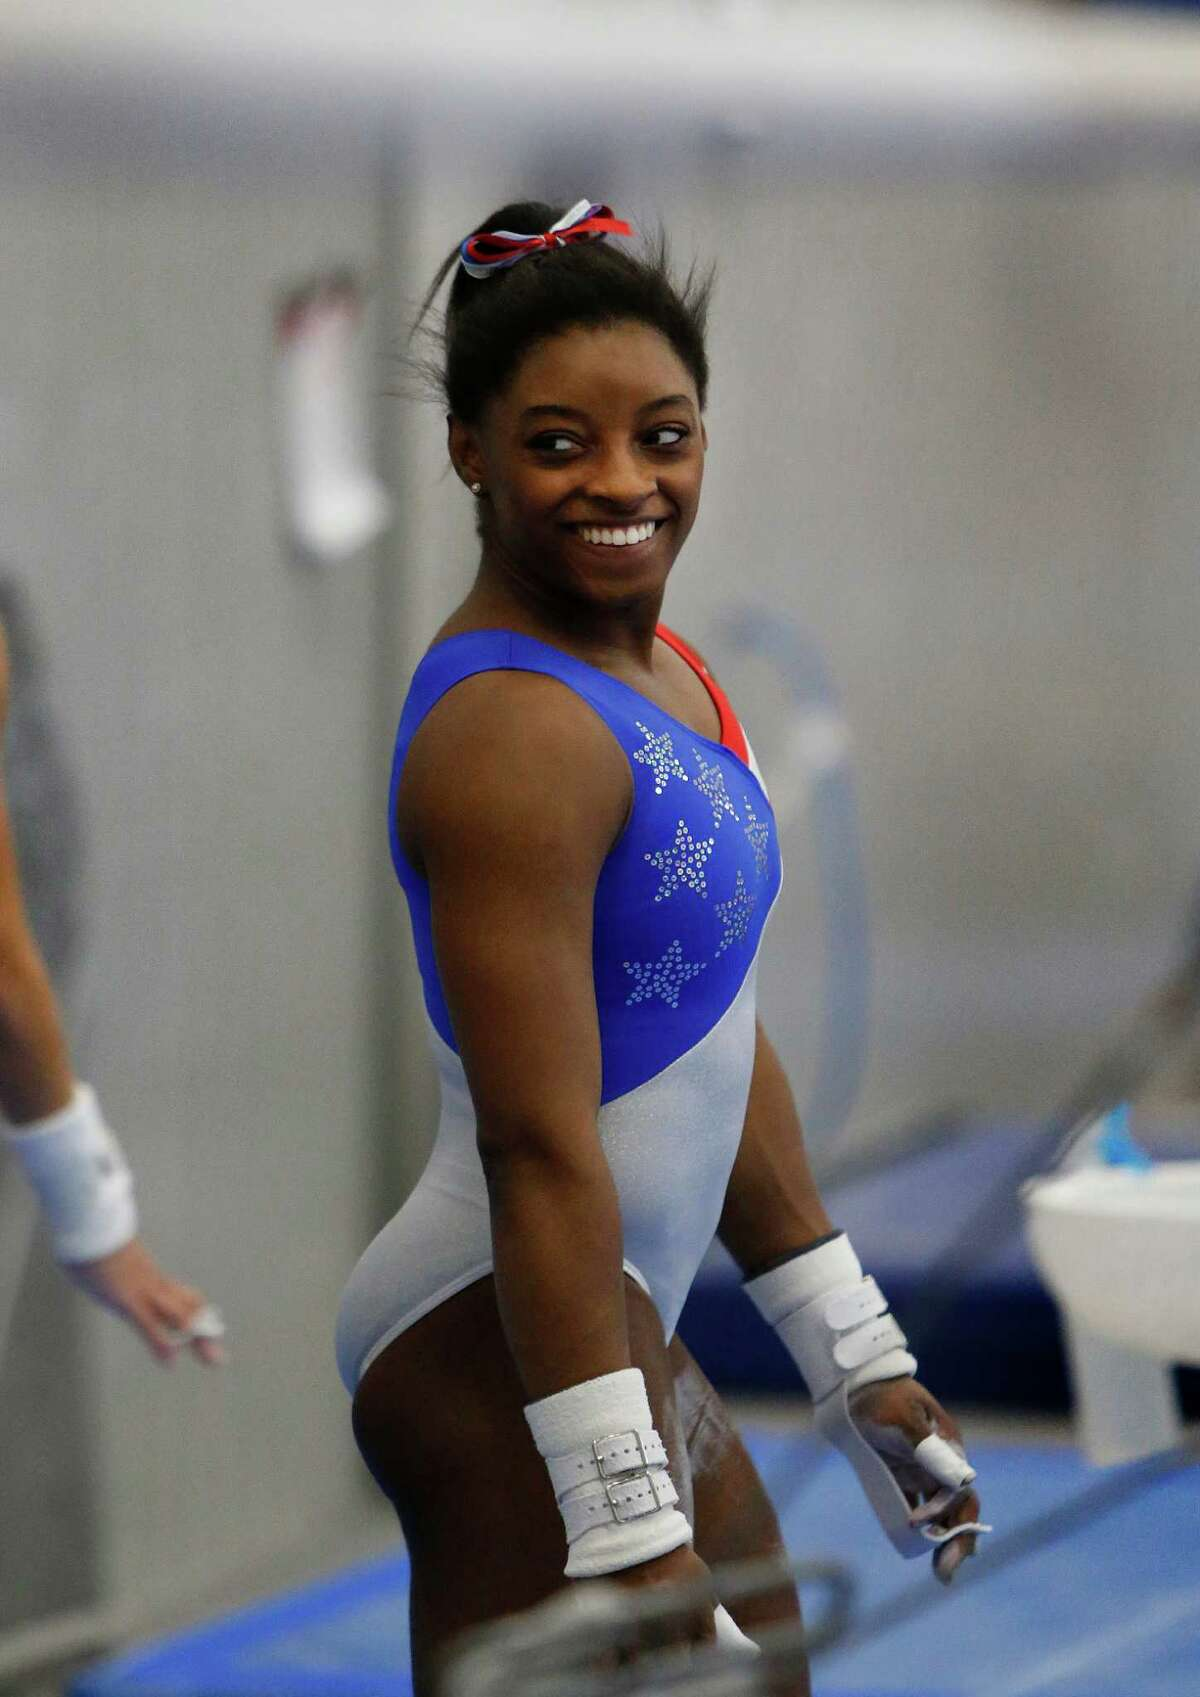 Even without cable TV, it's possible to watch Spring gymnast Simone Giles and other U.S. Olympians when they compete in the Rio Olympics starting next week. Click through the gallery to meet Houston's Olympic representatives this year.